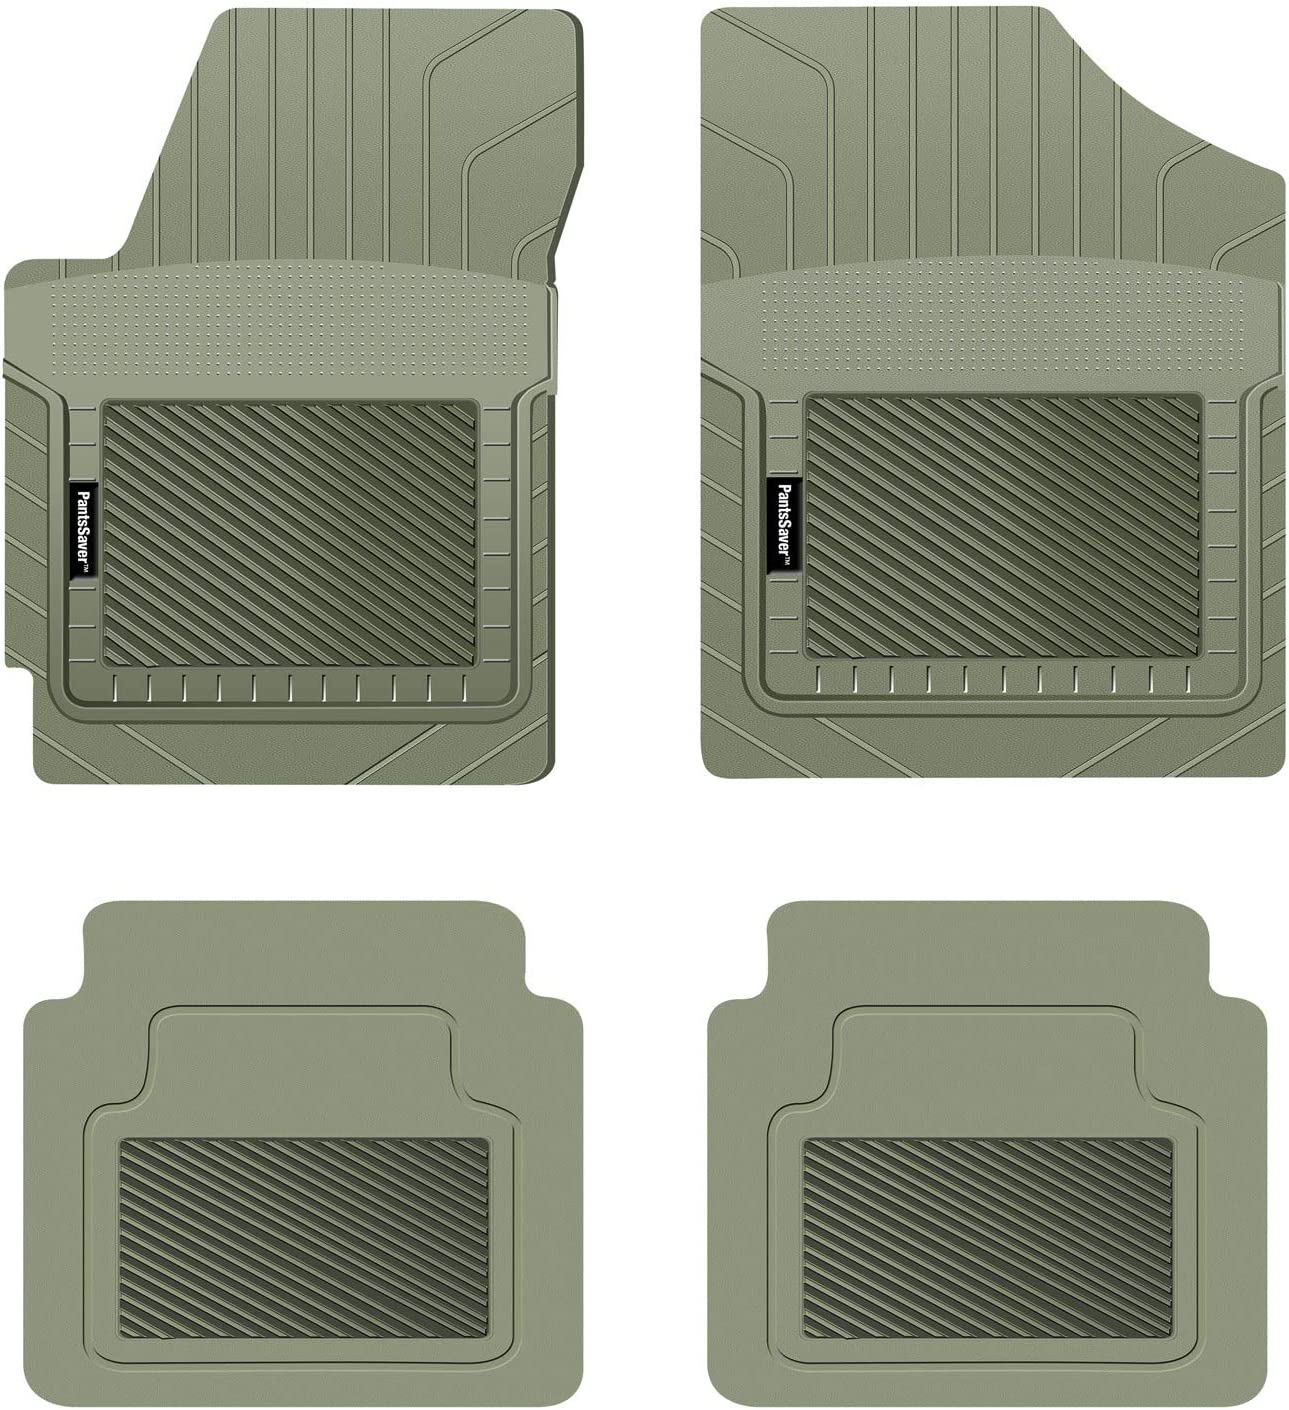 PantsSaver Free shipping anywhere in the nation Custom Fits Car Floor Mats C Gran xDrive BMW Factory outlet 430i for